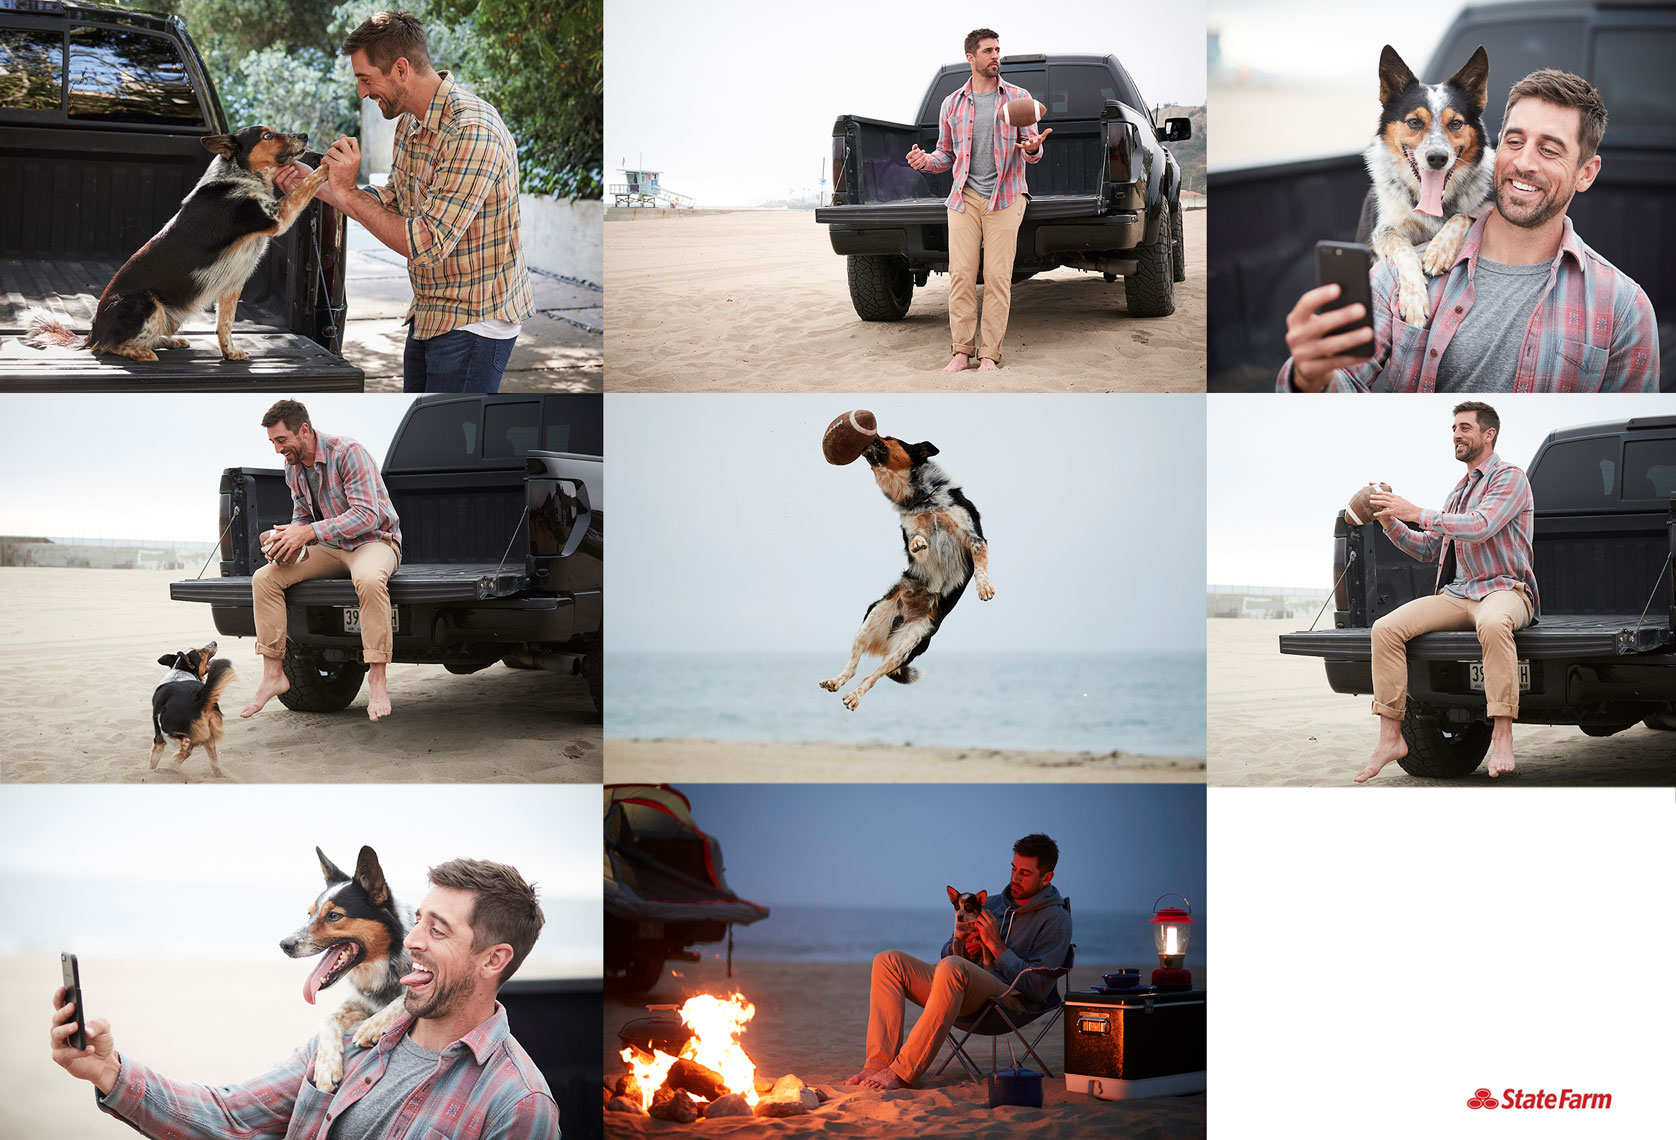 Aaron-and-Dog_1